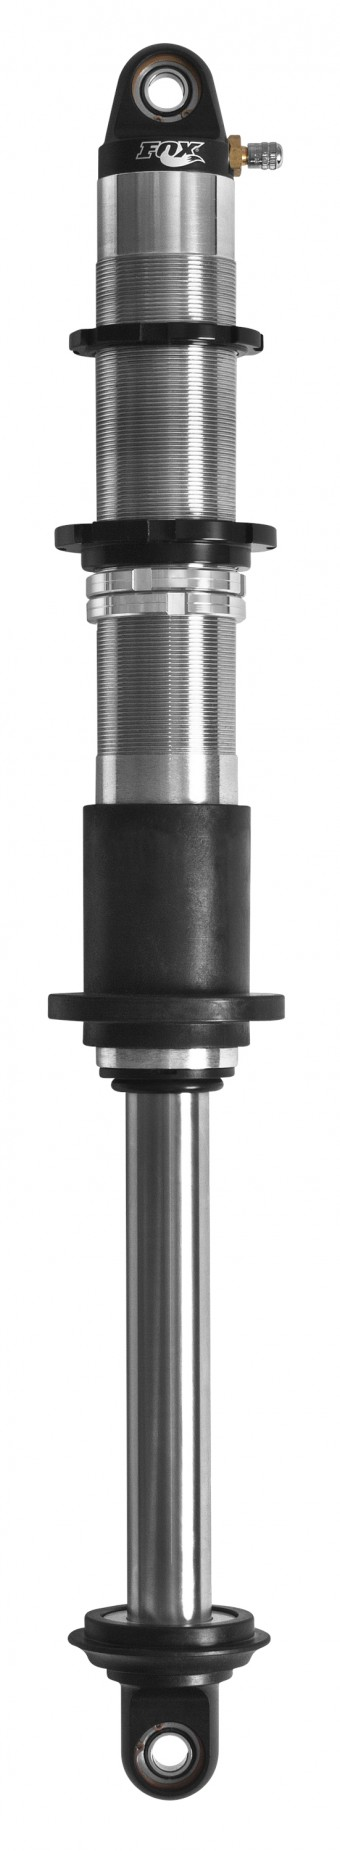 FOX 2.0 X 9.35 COIL-OVER AIR SHOCK 40/90